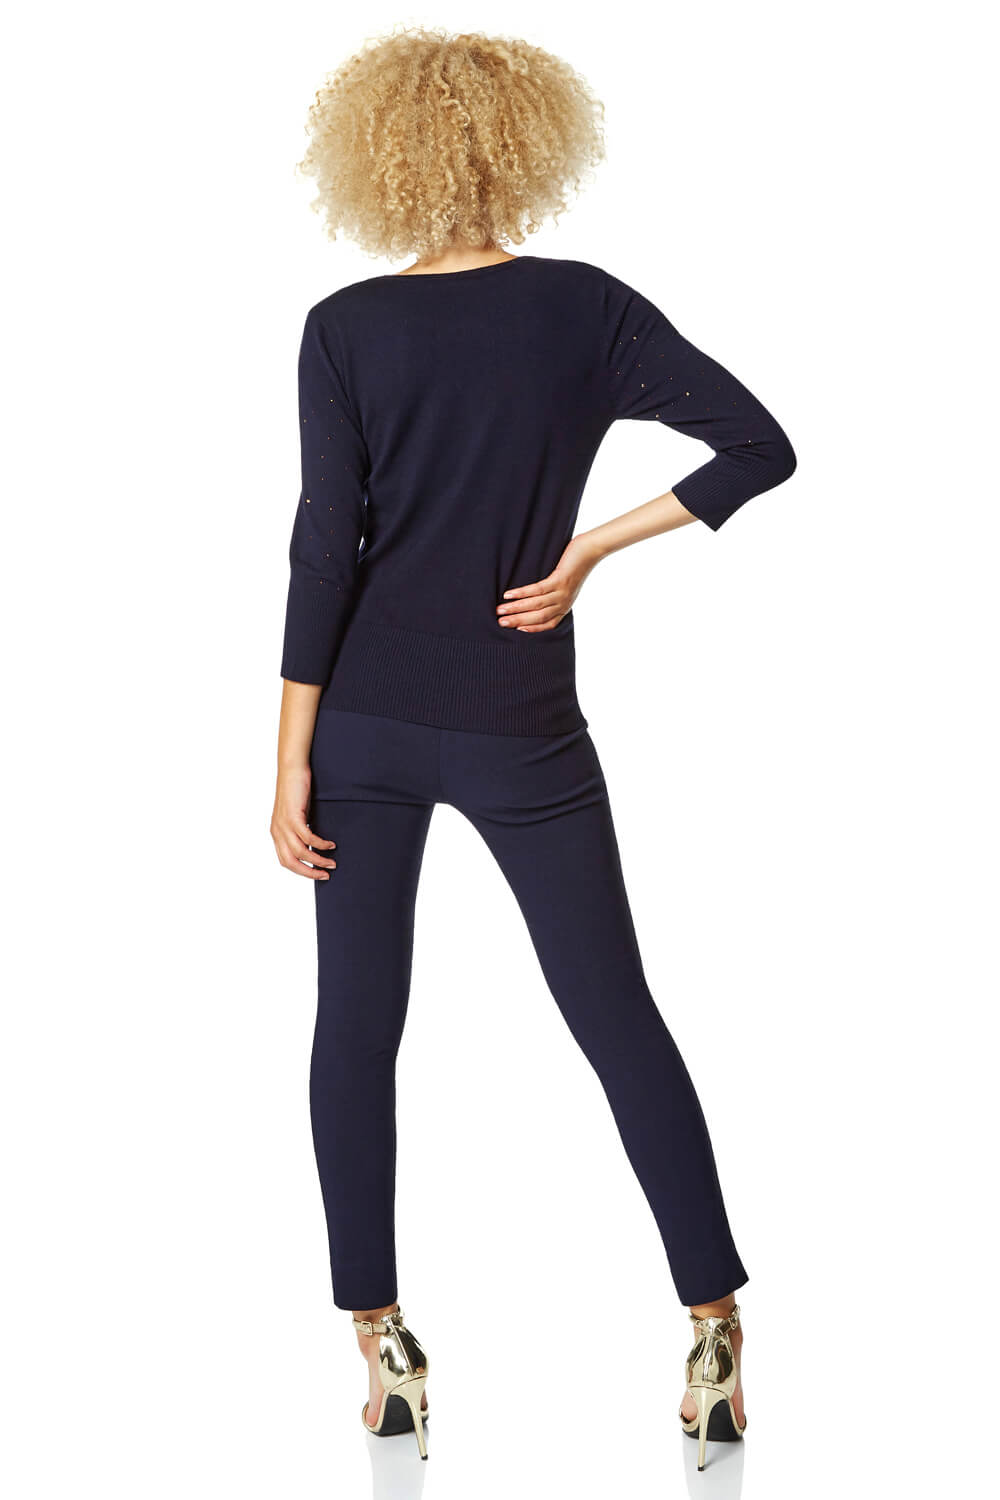 Diamante-Neckline-Long-Sleeve-Jumper-Women-Roman-Originals thumbnail 10